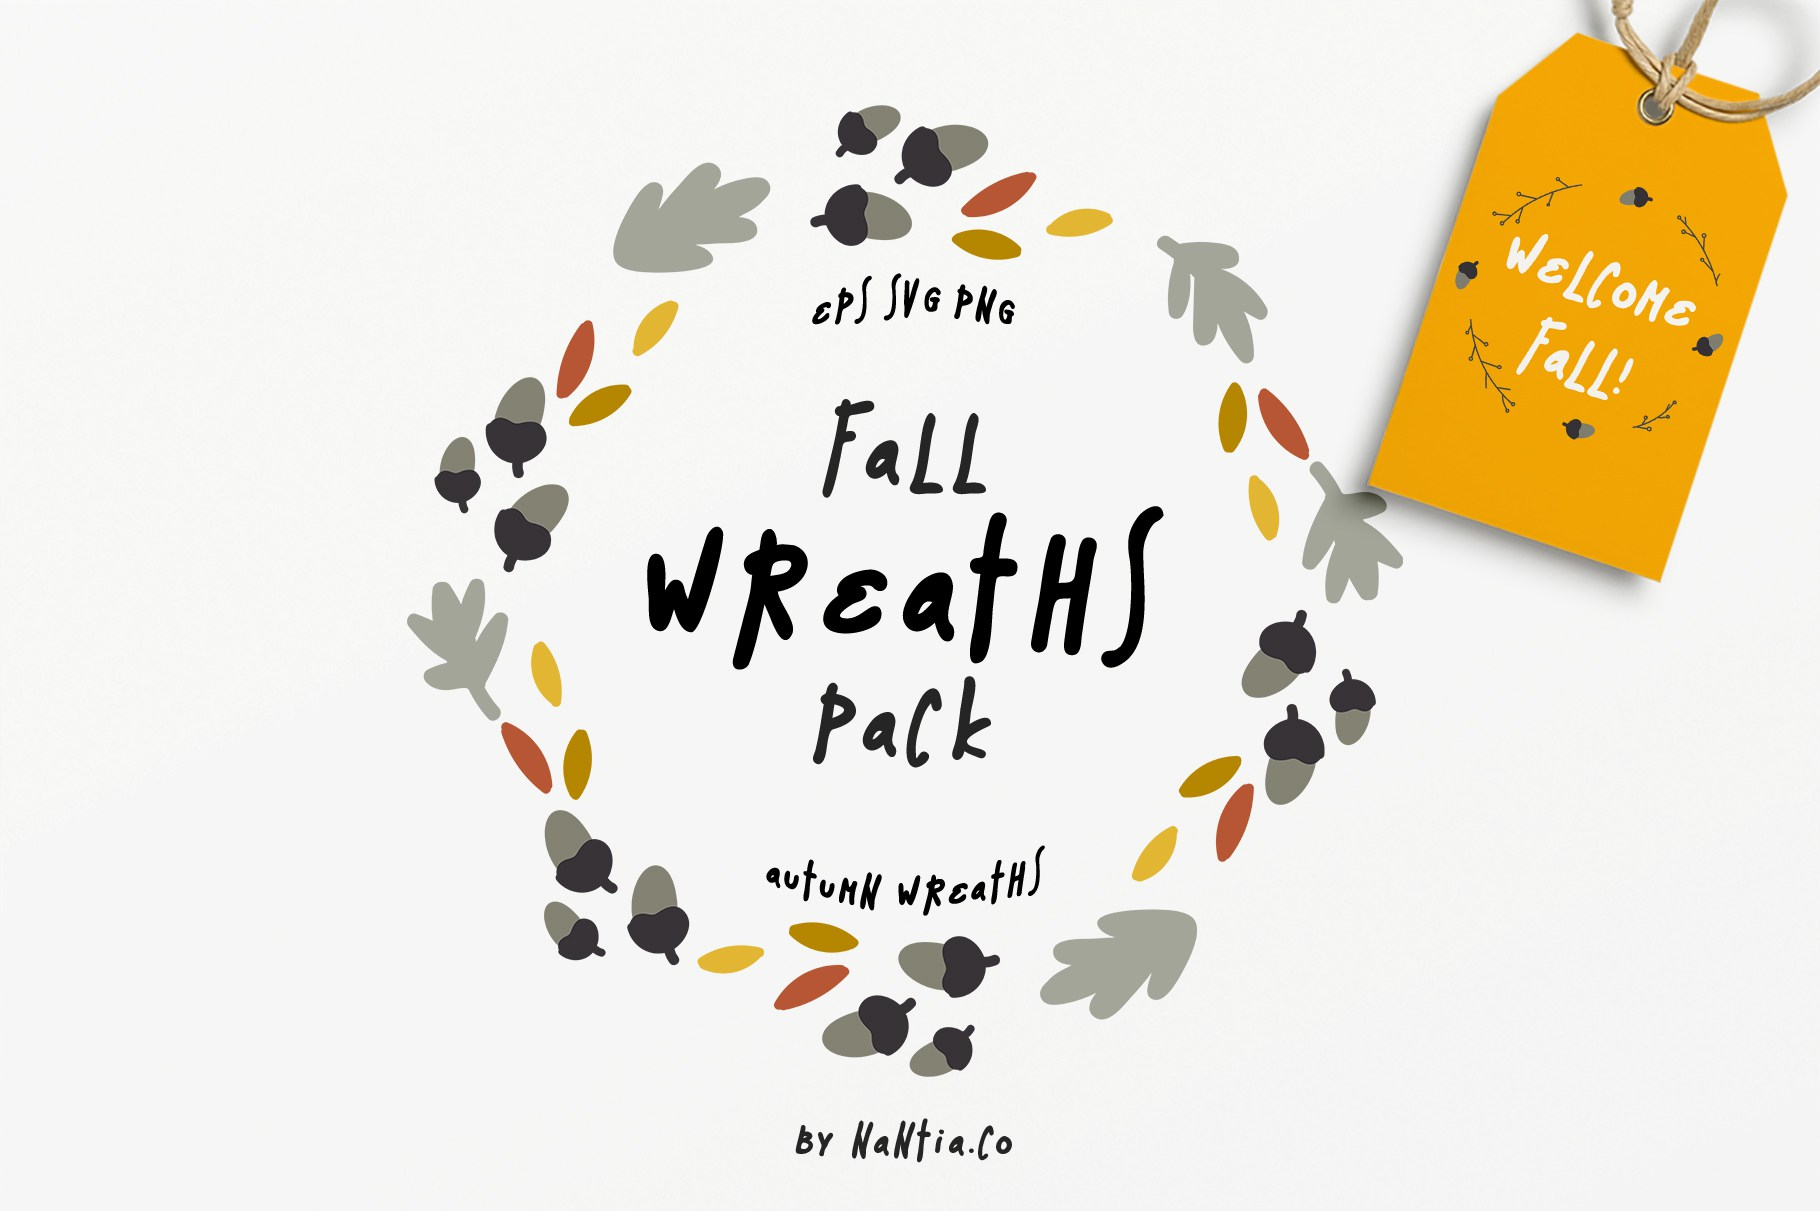 1820x1211 Welcome Fall! 30 Fall Vector Wreaths Pack